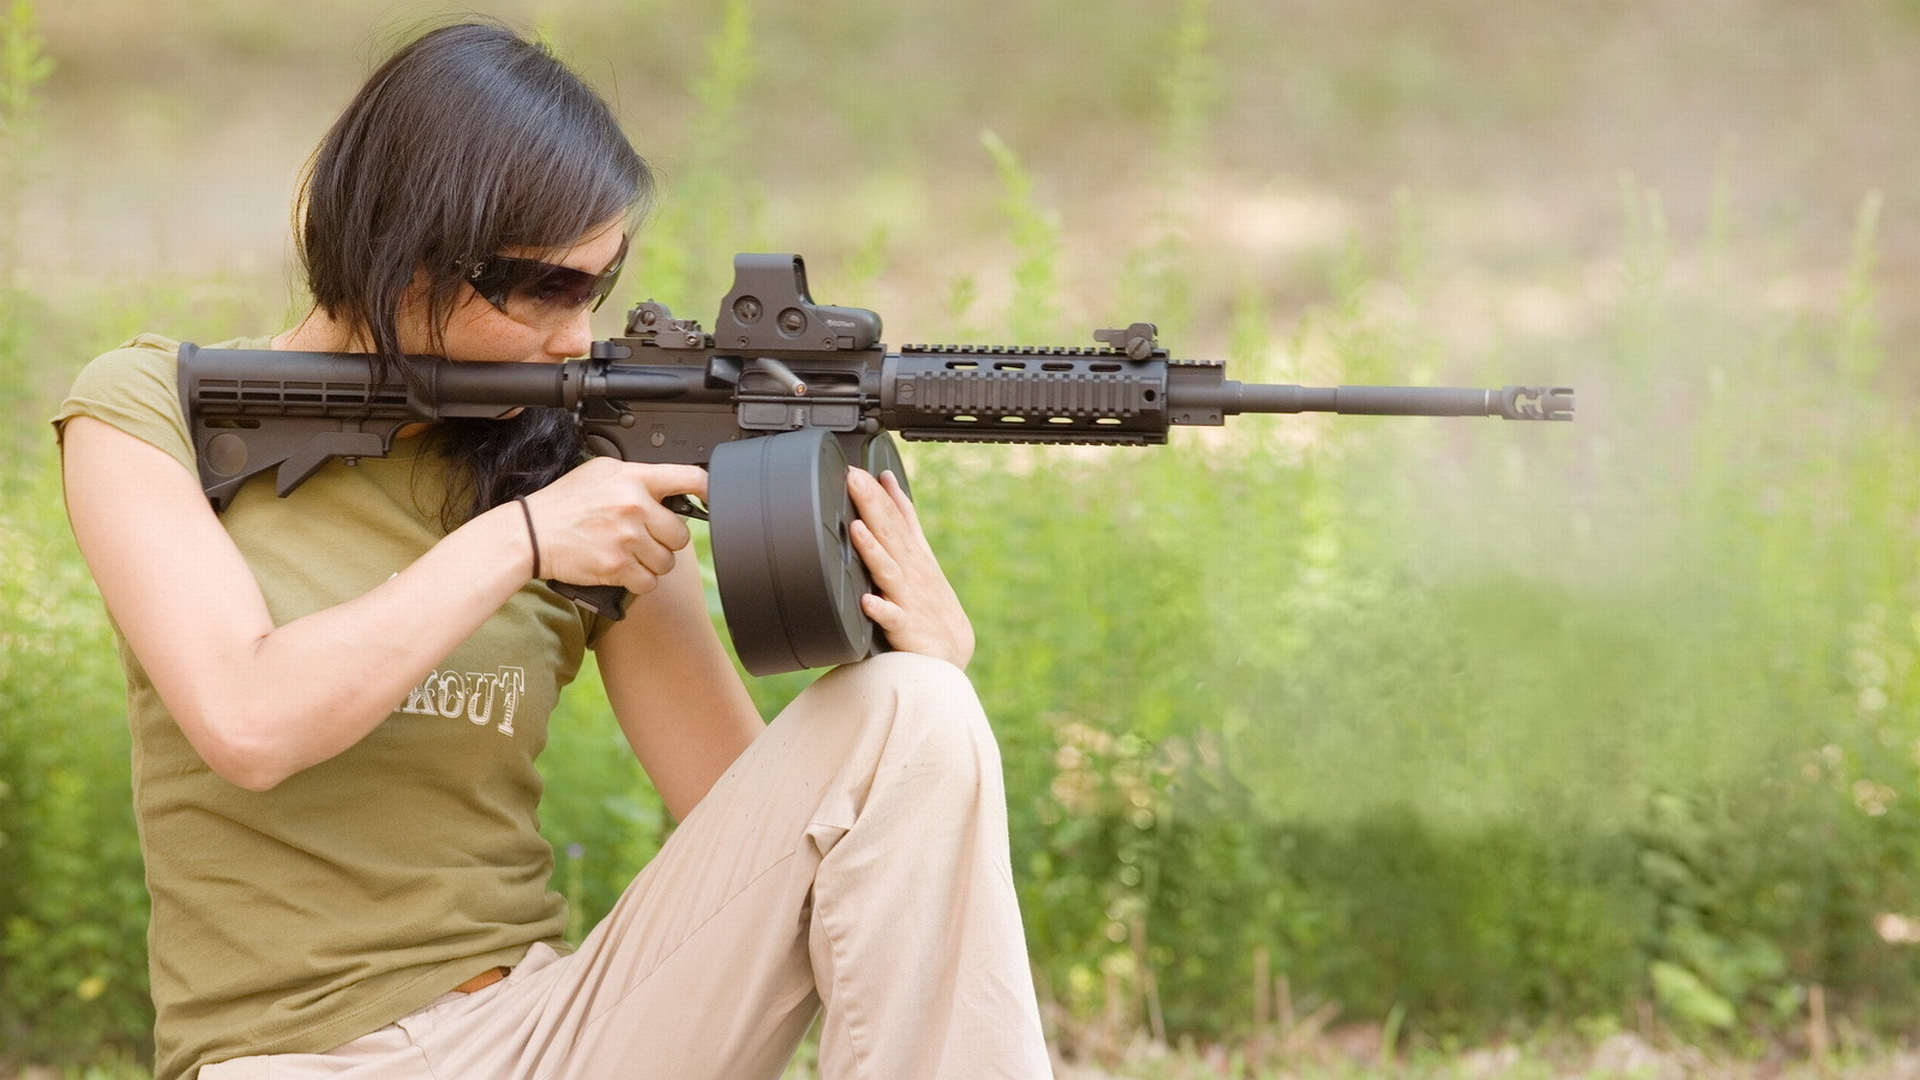 Sexy Naked Girls With Guns Hd Wallpapers - New Porn-9114